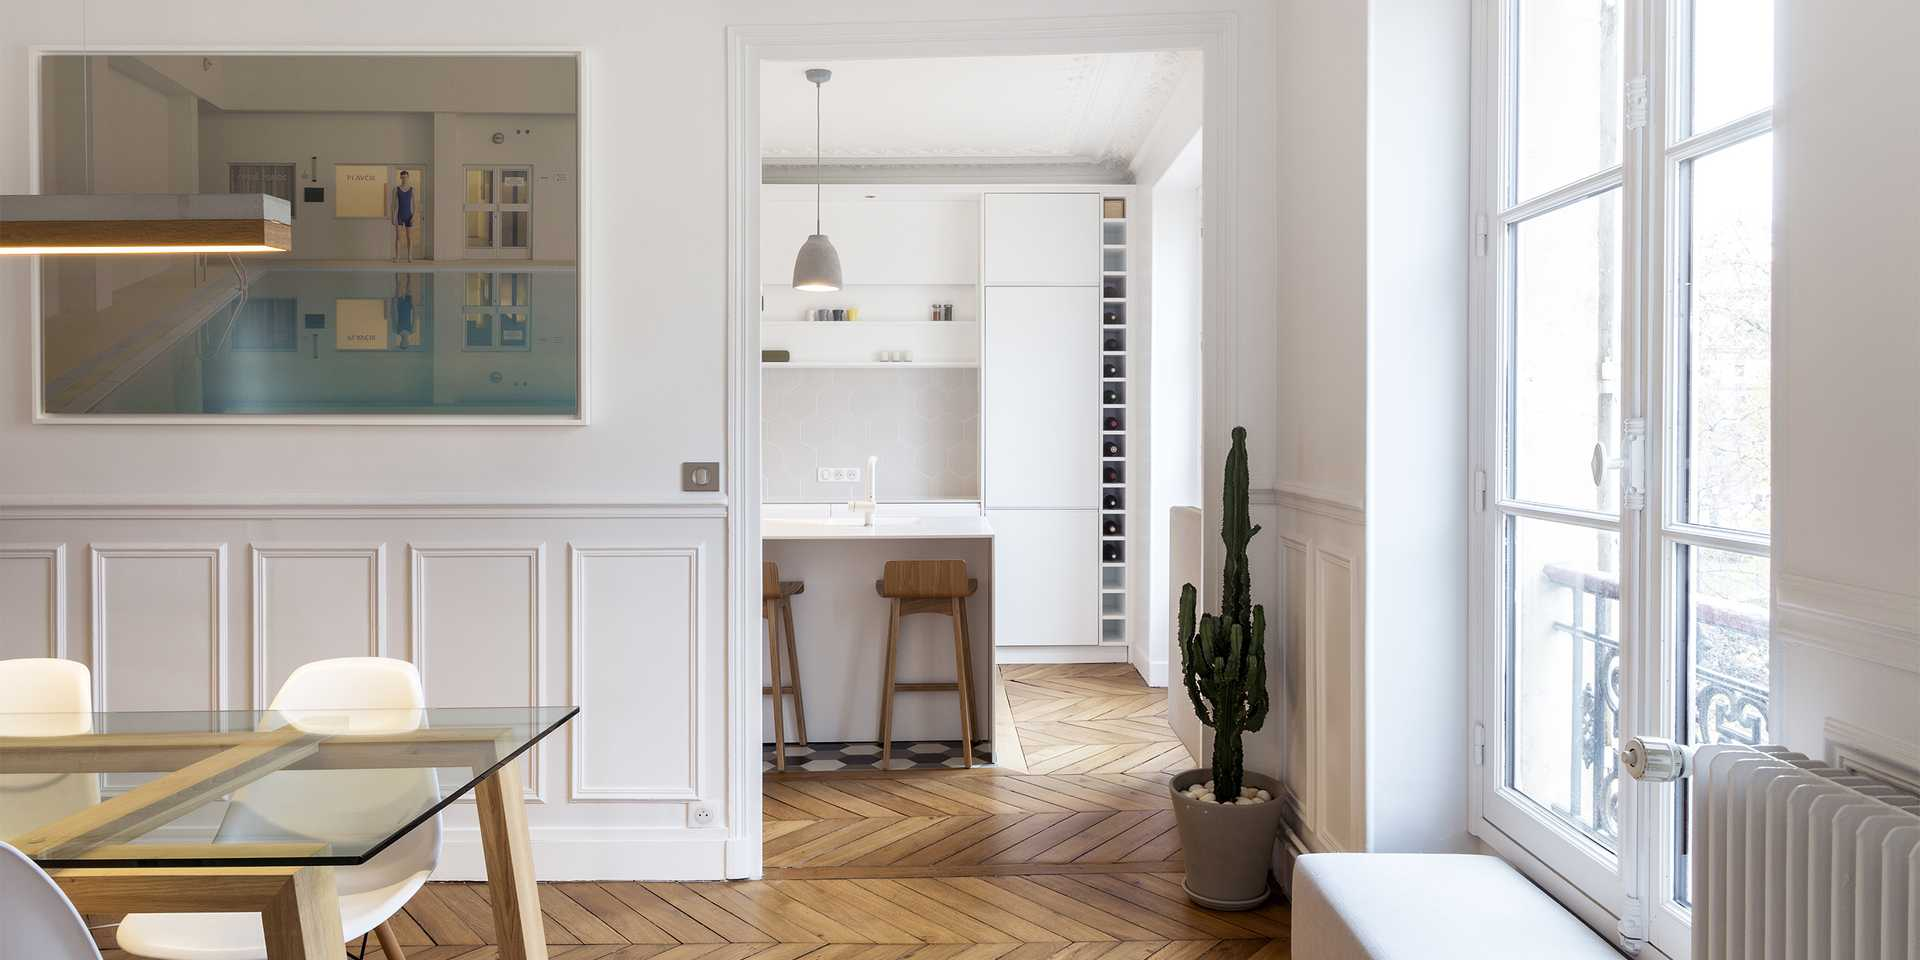 Haussmannian apartment redesigned by an architect in Montpellier